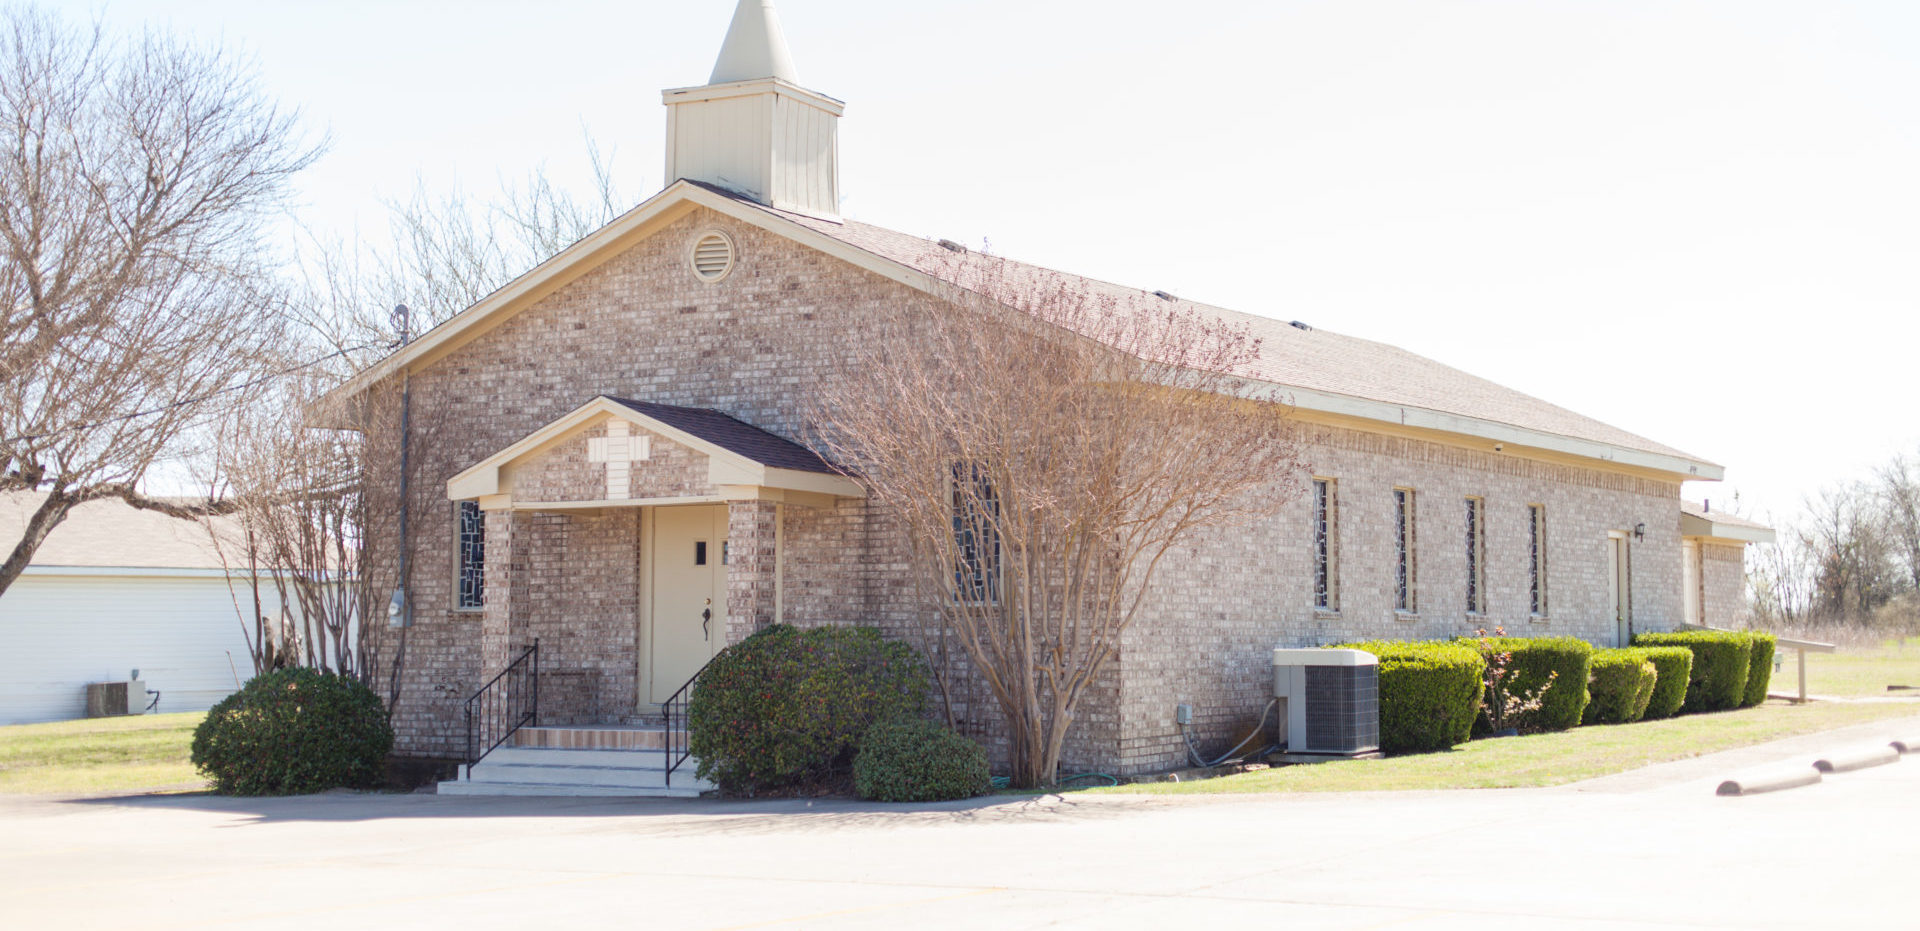 Willow Grove Baptist Church